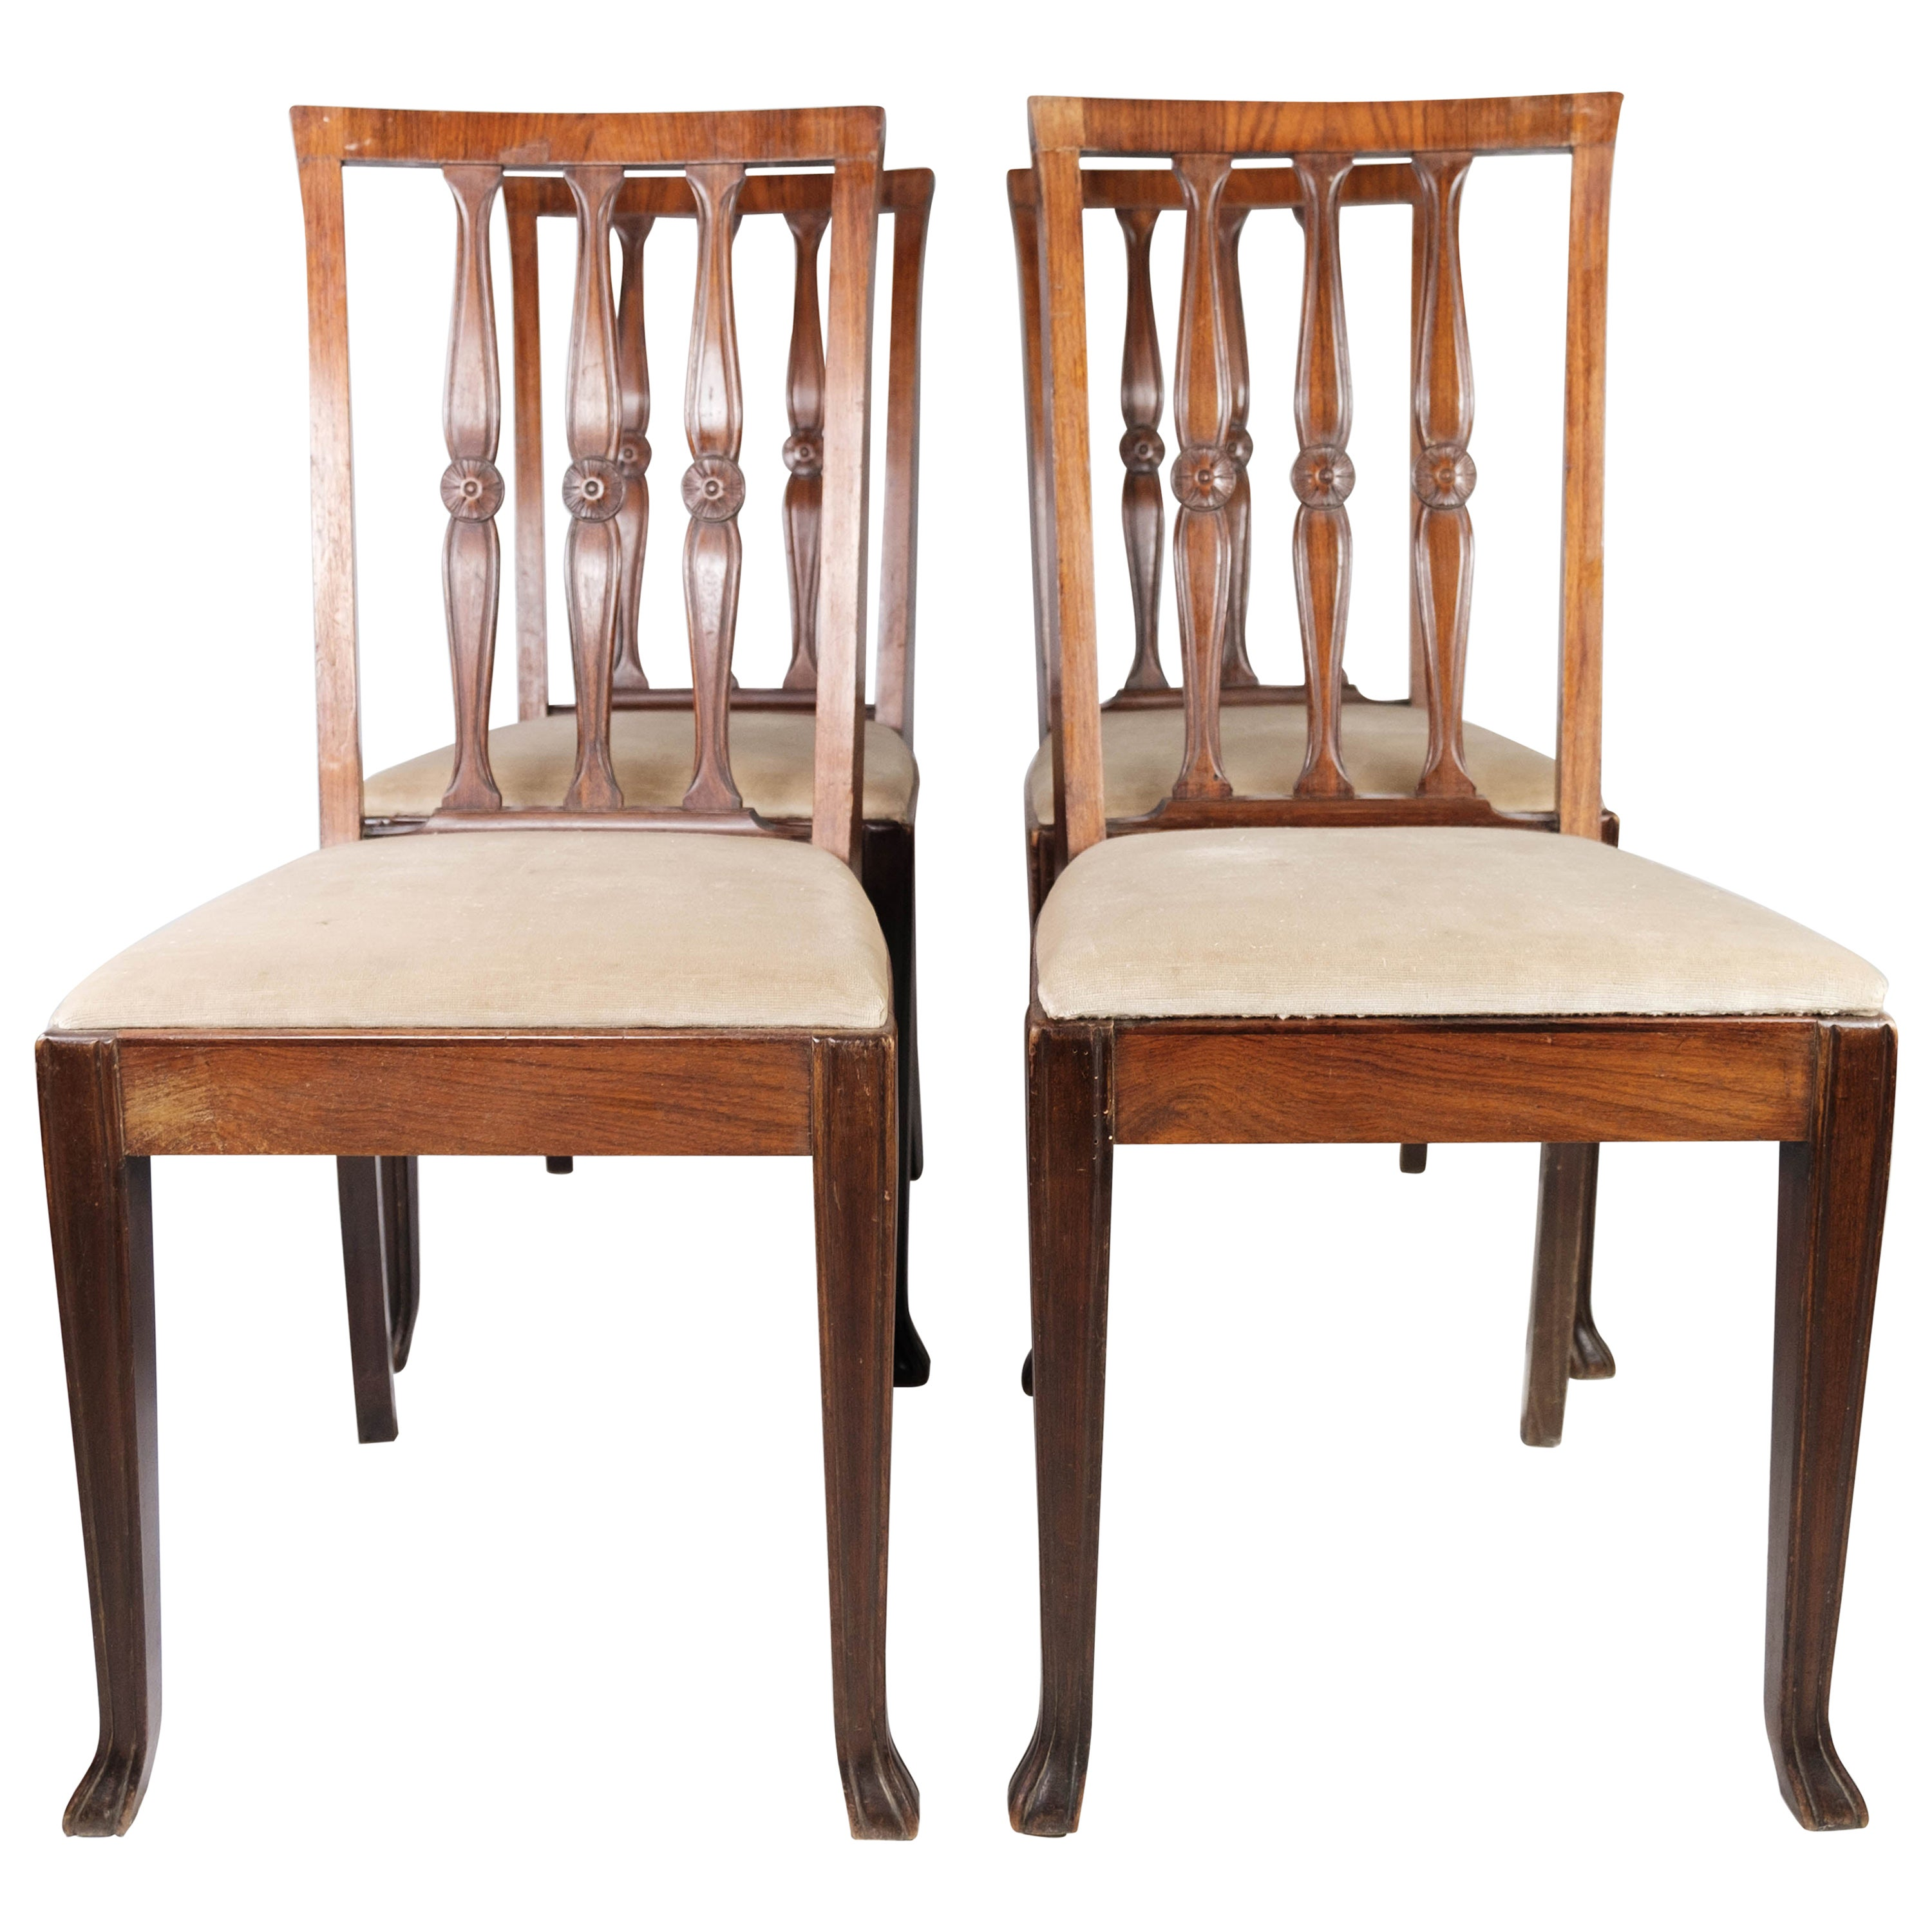 Set of Four Dining Room Chairs in Rosewood, 1920s